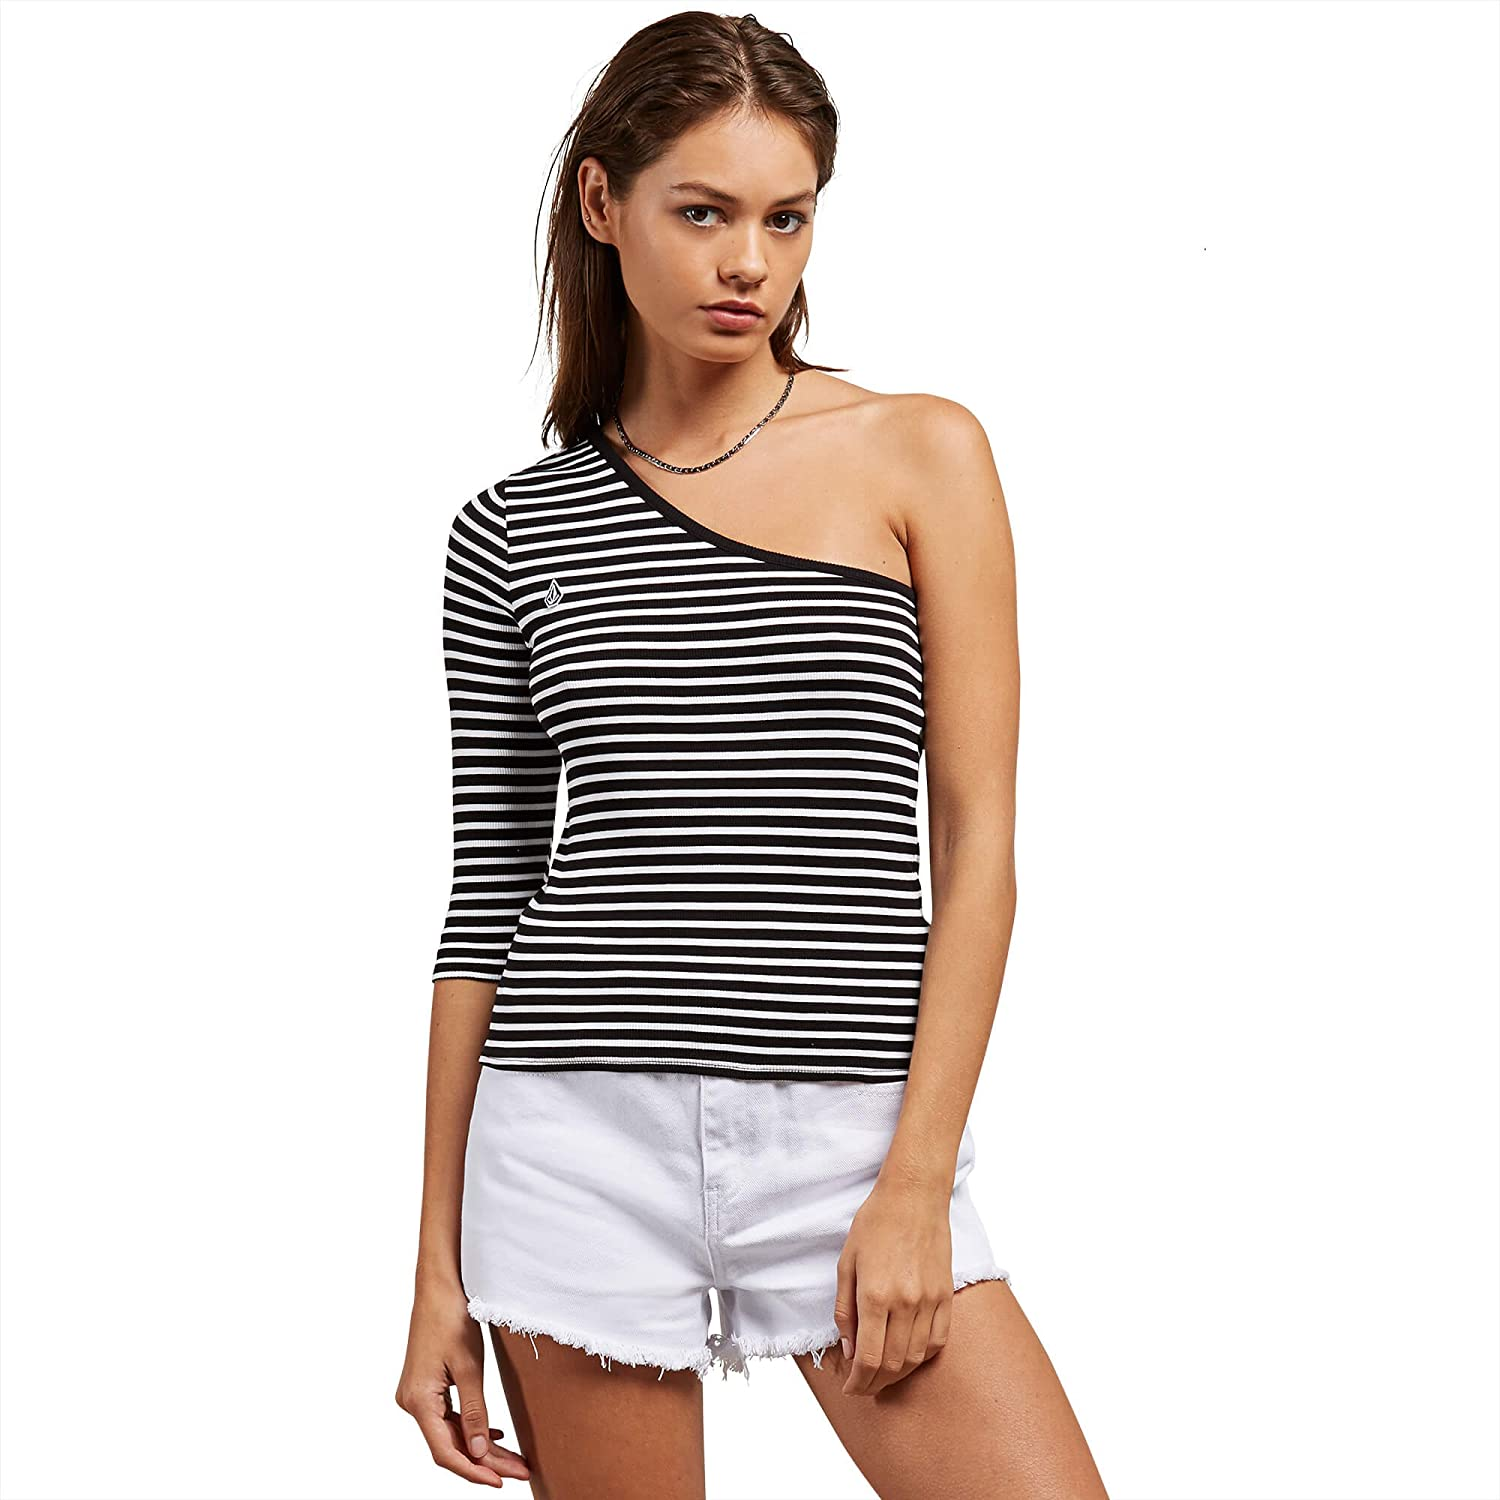 Volcom Womens Rave New World Fitted One Should Top